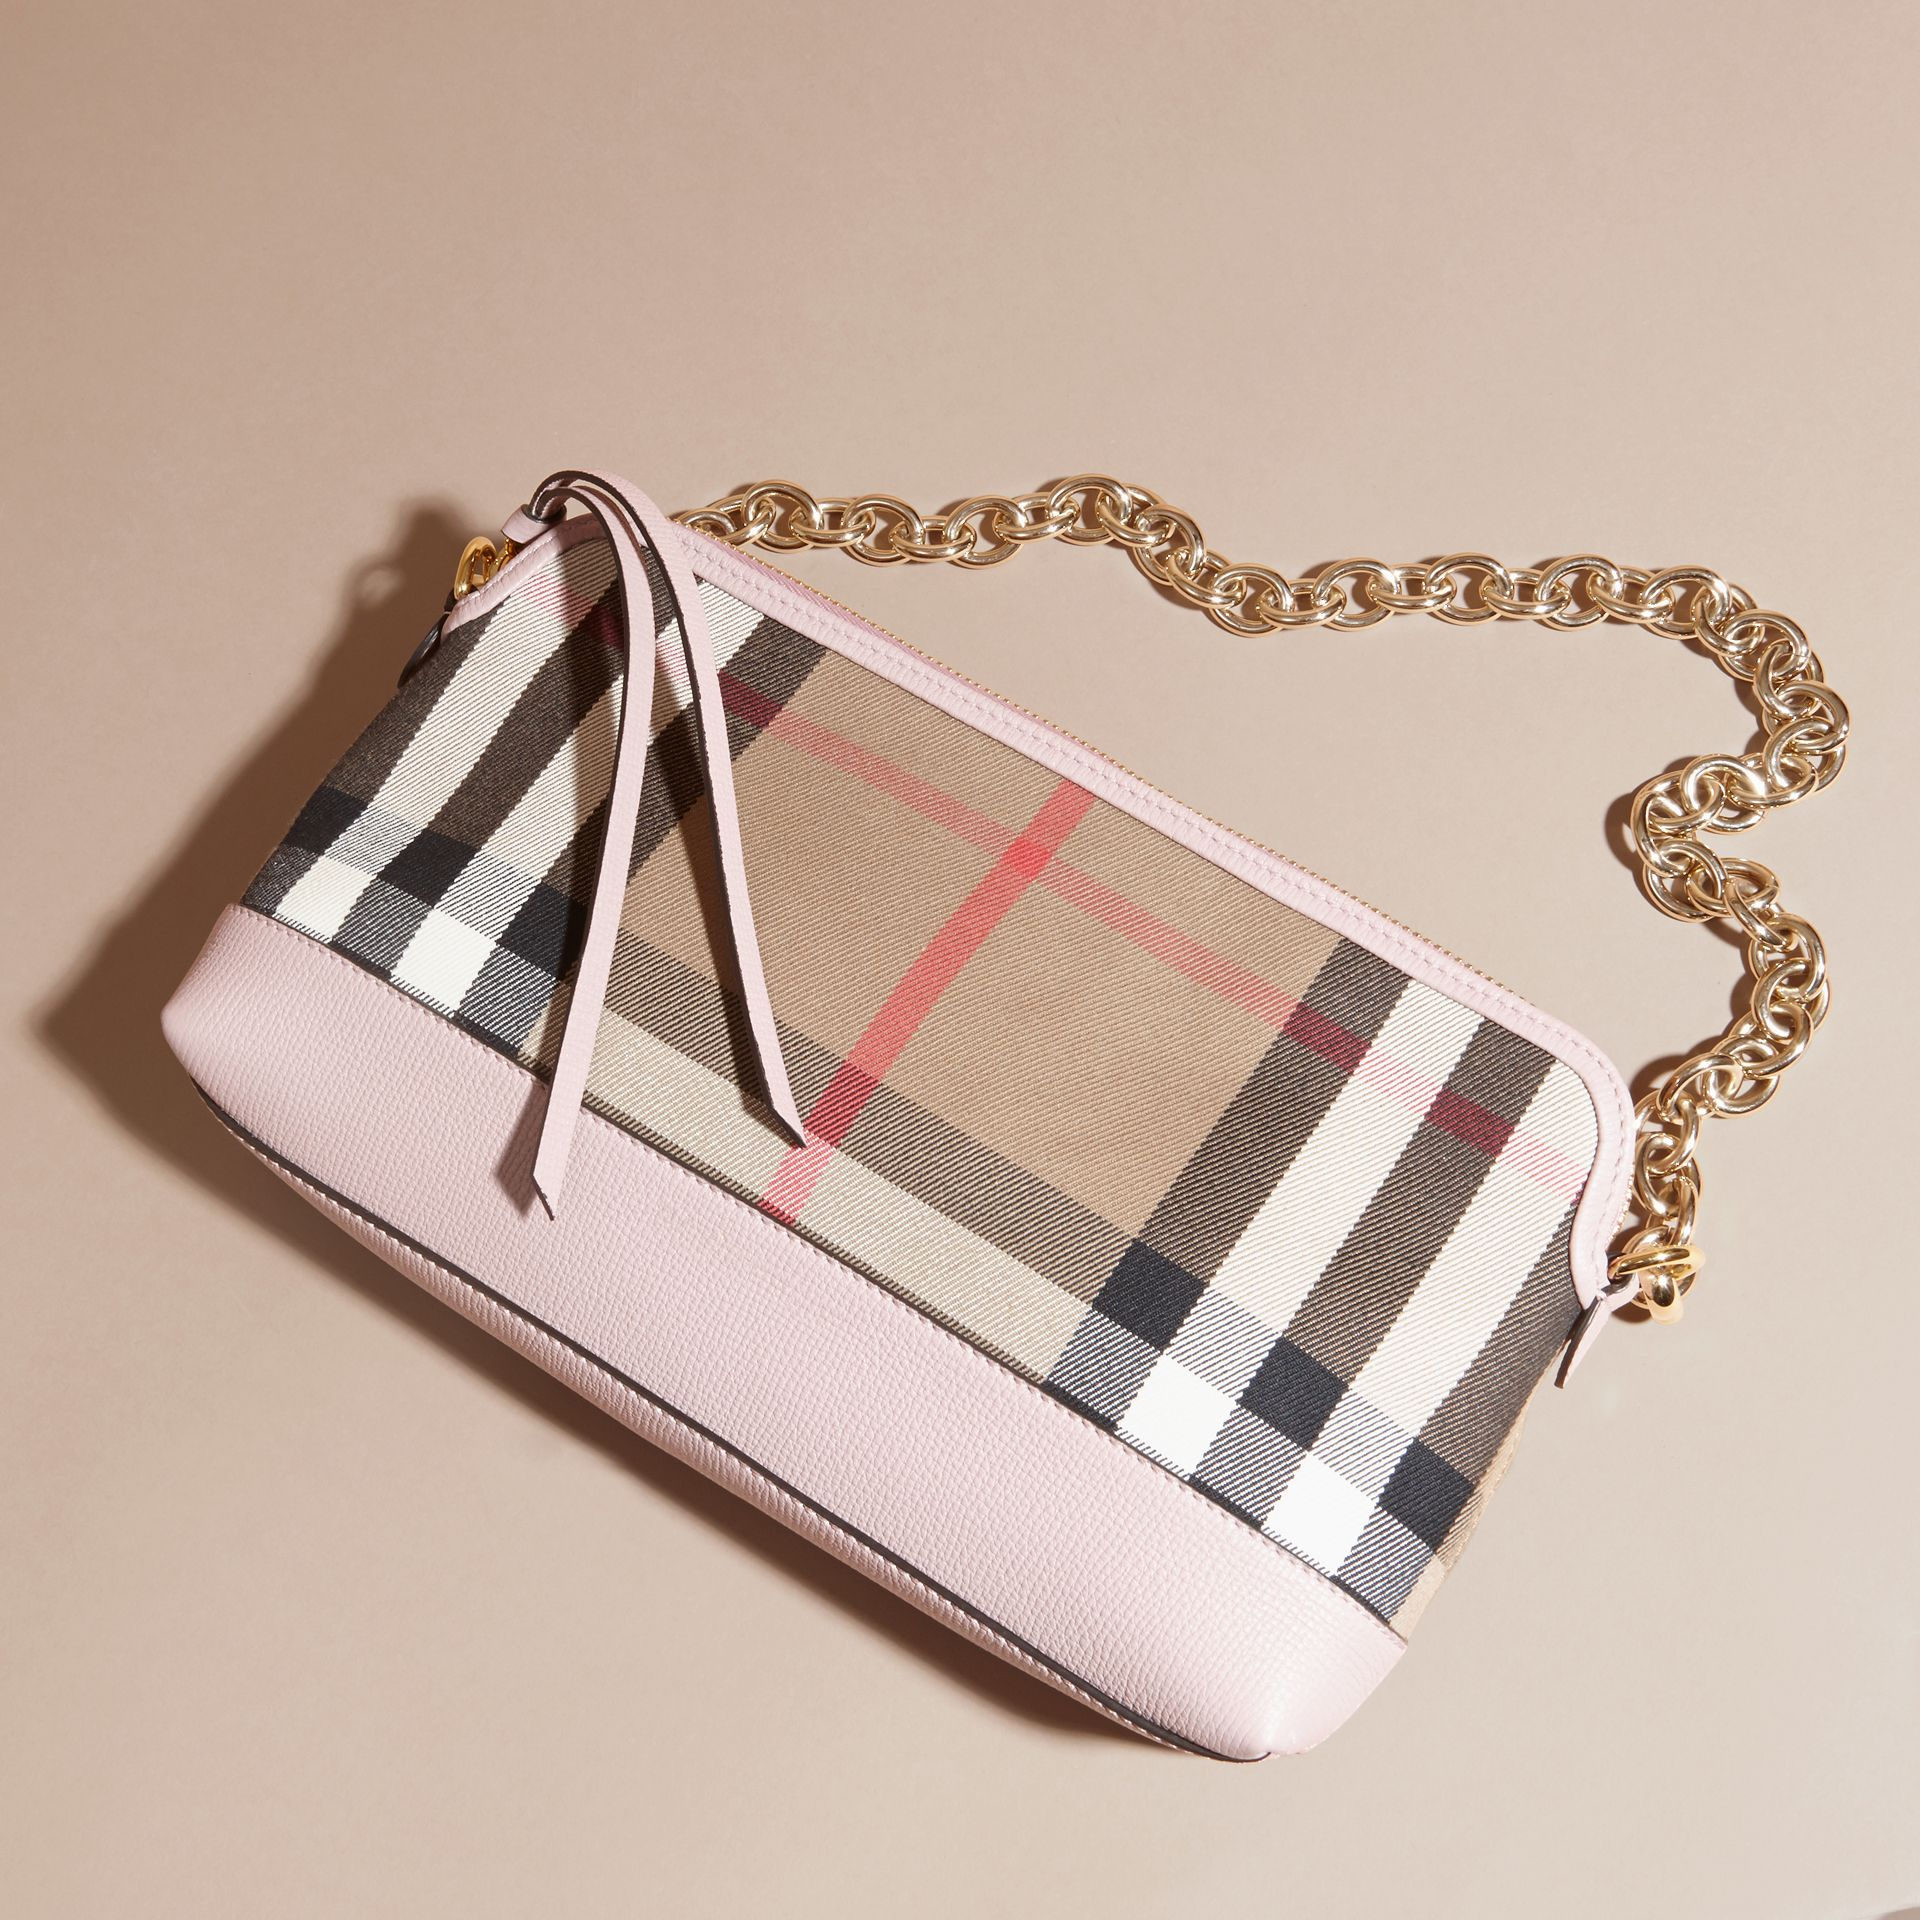 House Check and Leather Clutch Bag in Pale Orchid - Women | Burberry Australia - gallery image 8